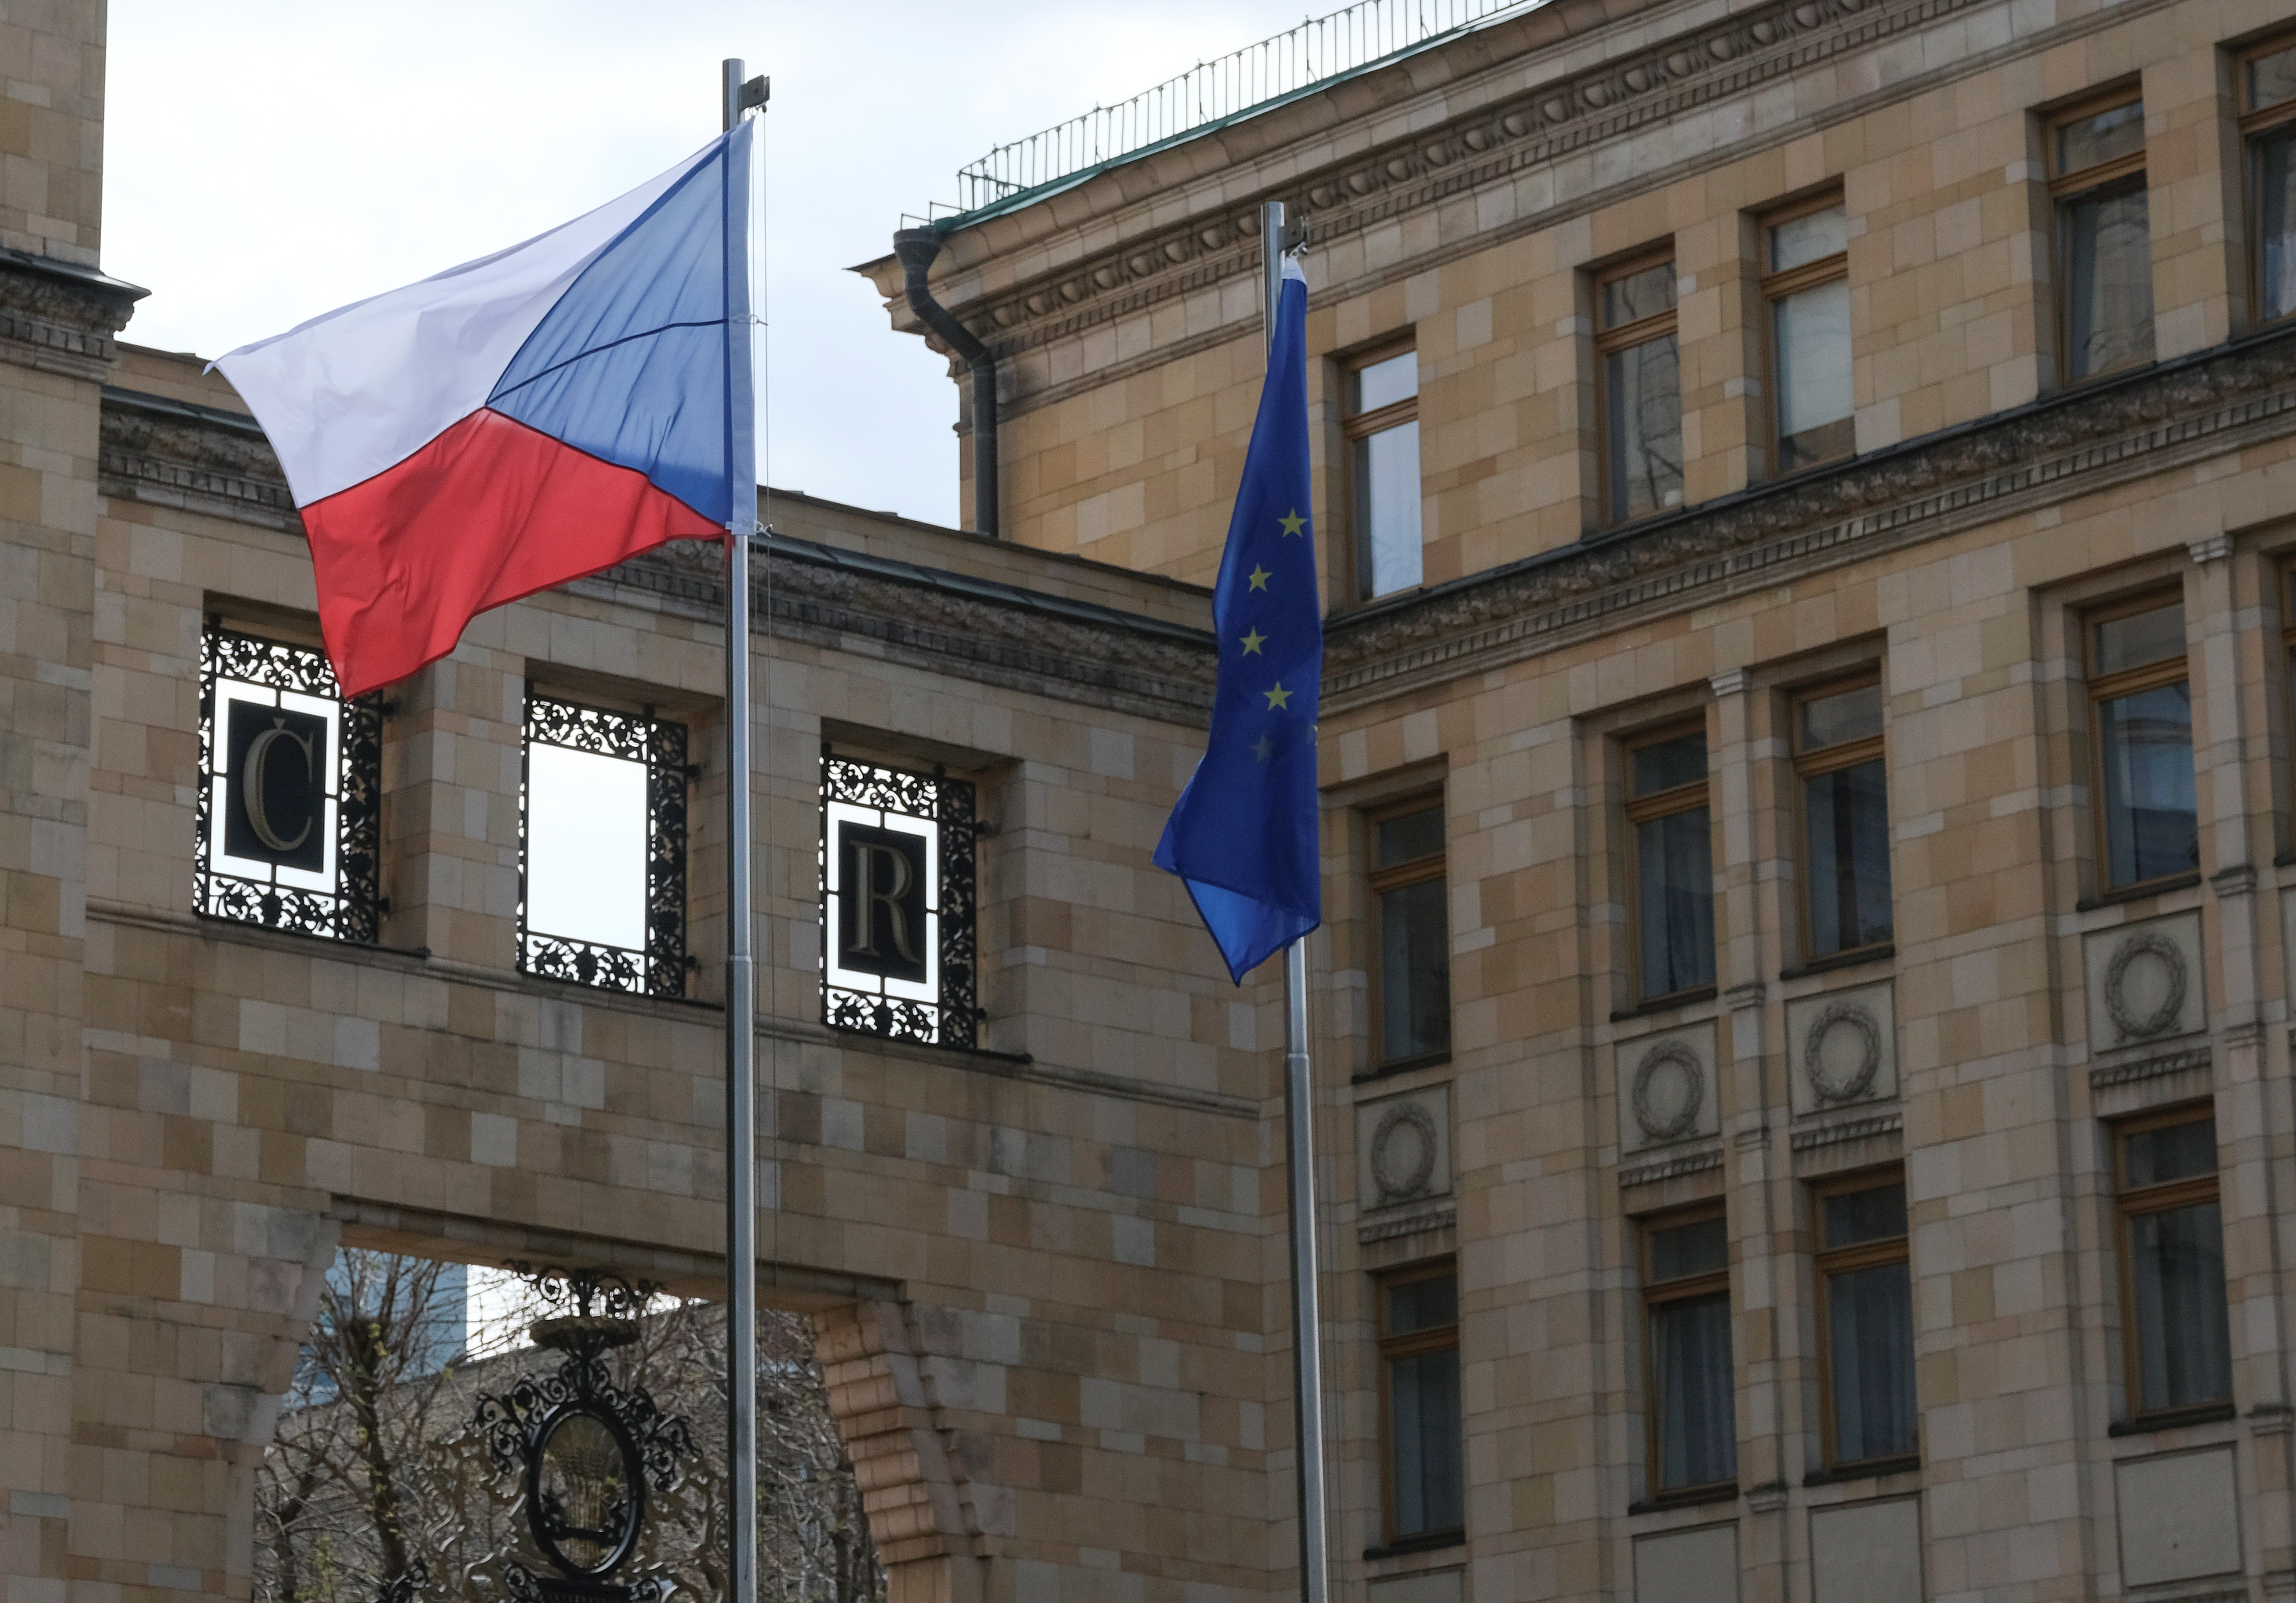 A view shows the embassy of the Czech Republic in Moscow, Russia, April 18, 2021. REUTERS/Shamil Zhumatov